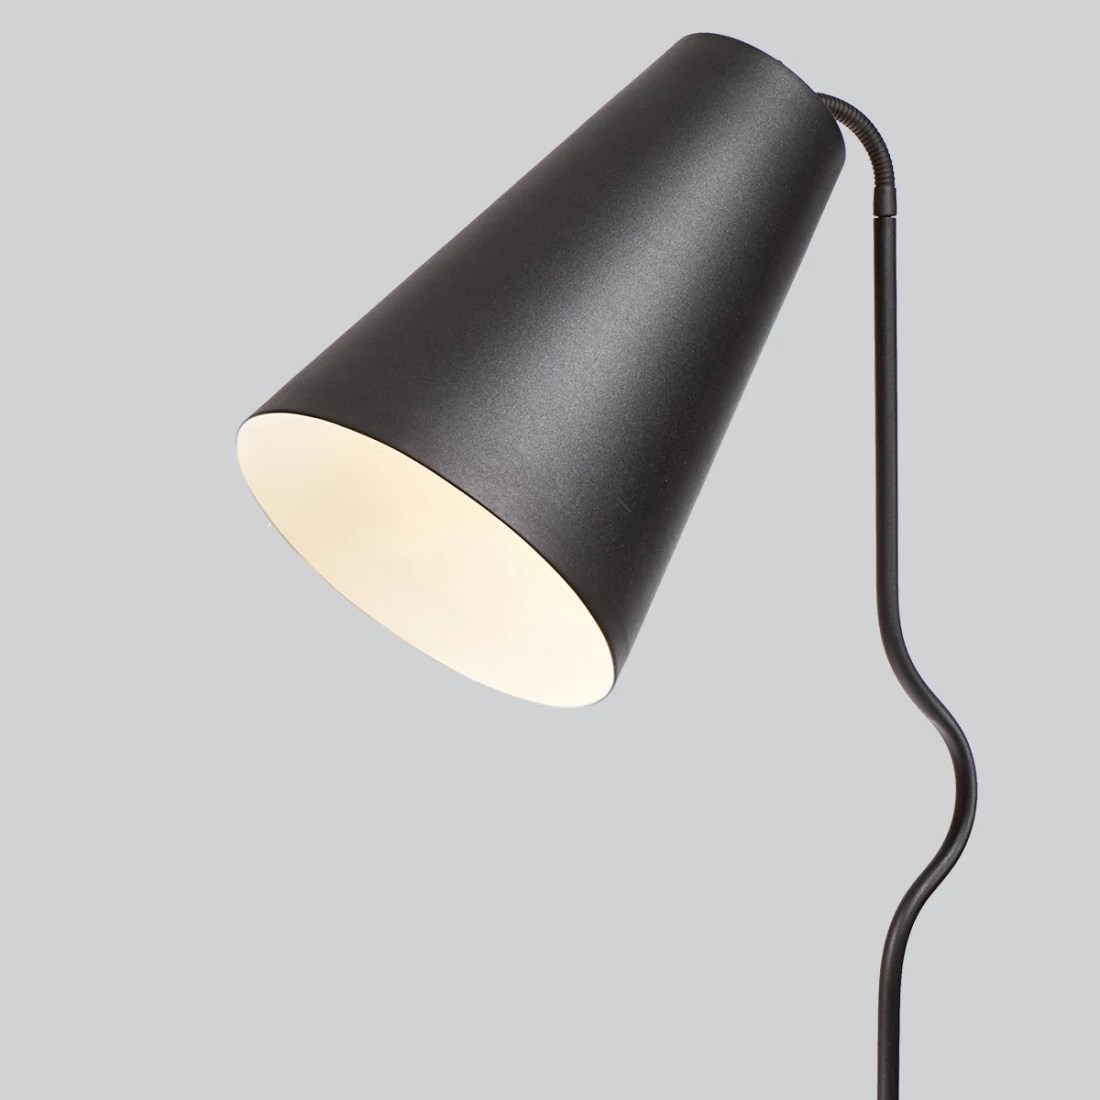 Luminaire Interieur Sur Pied Lampe Sur Pied Design Bender Northern Lighting